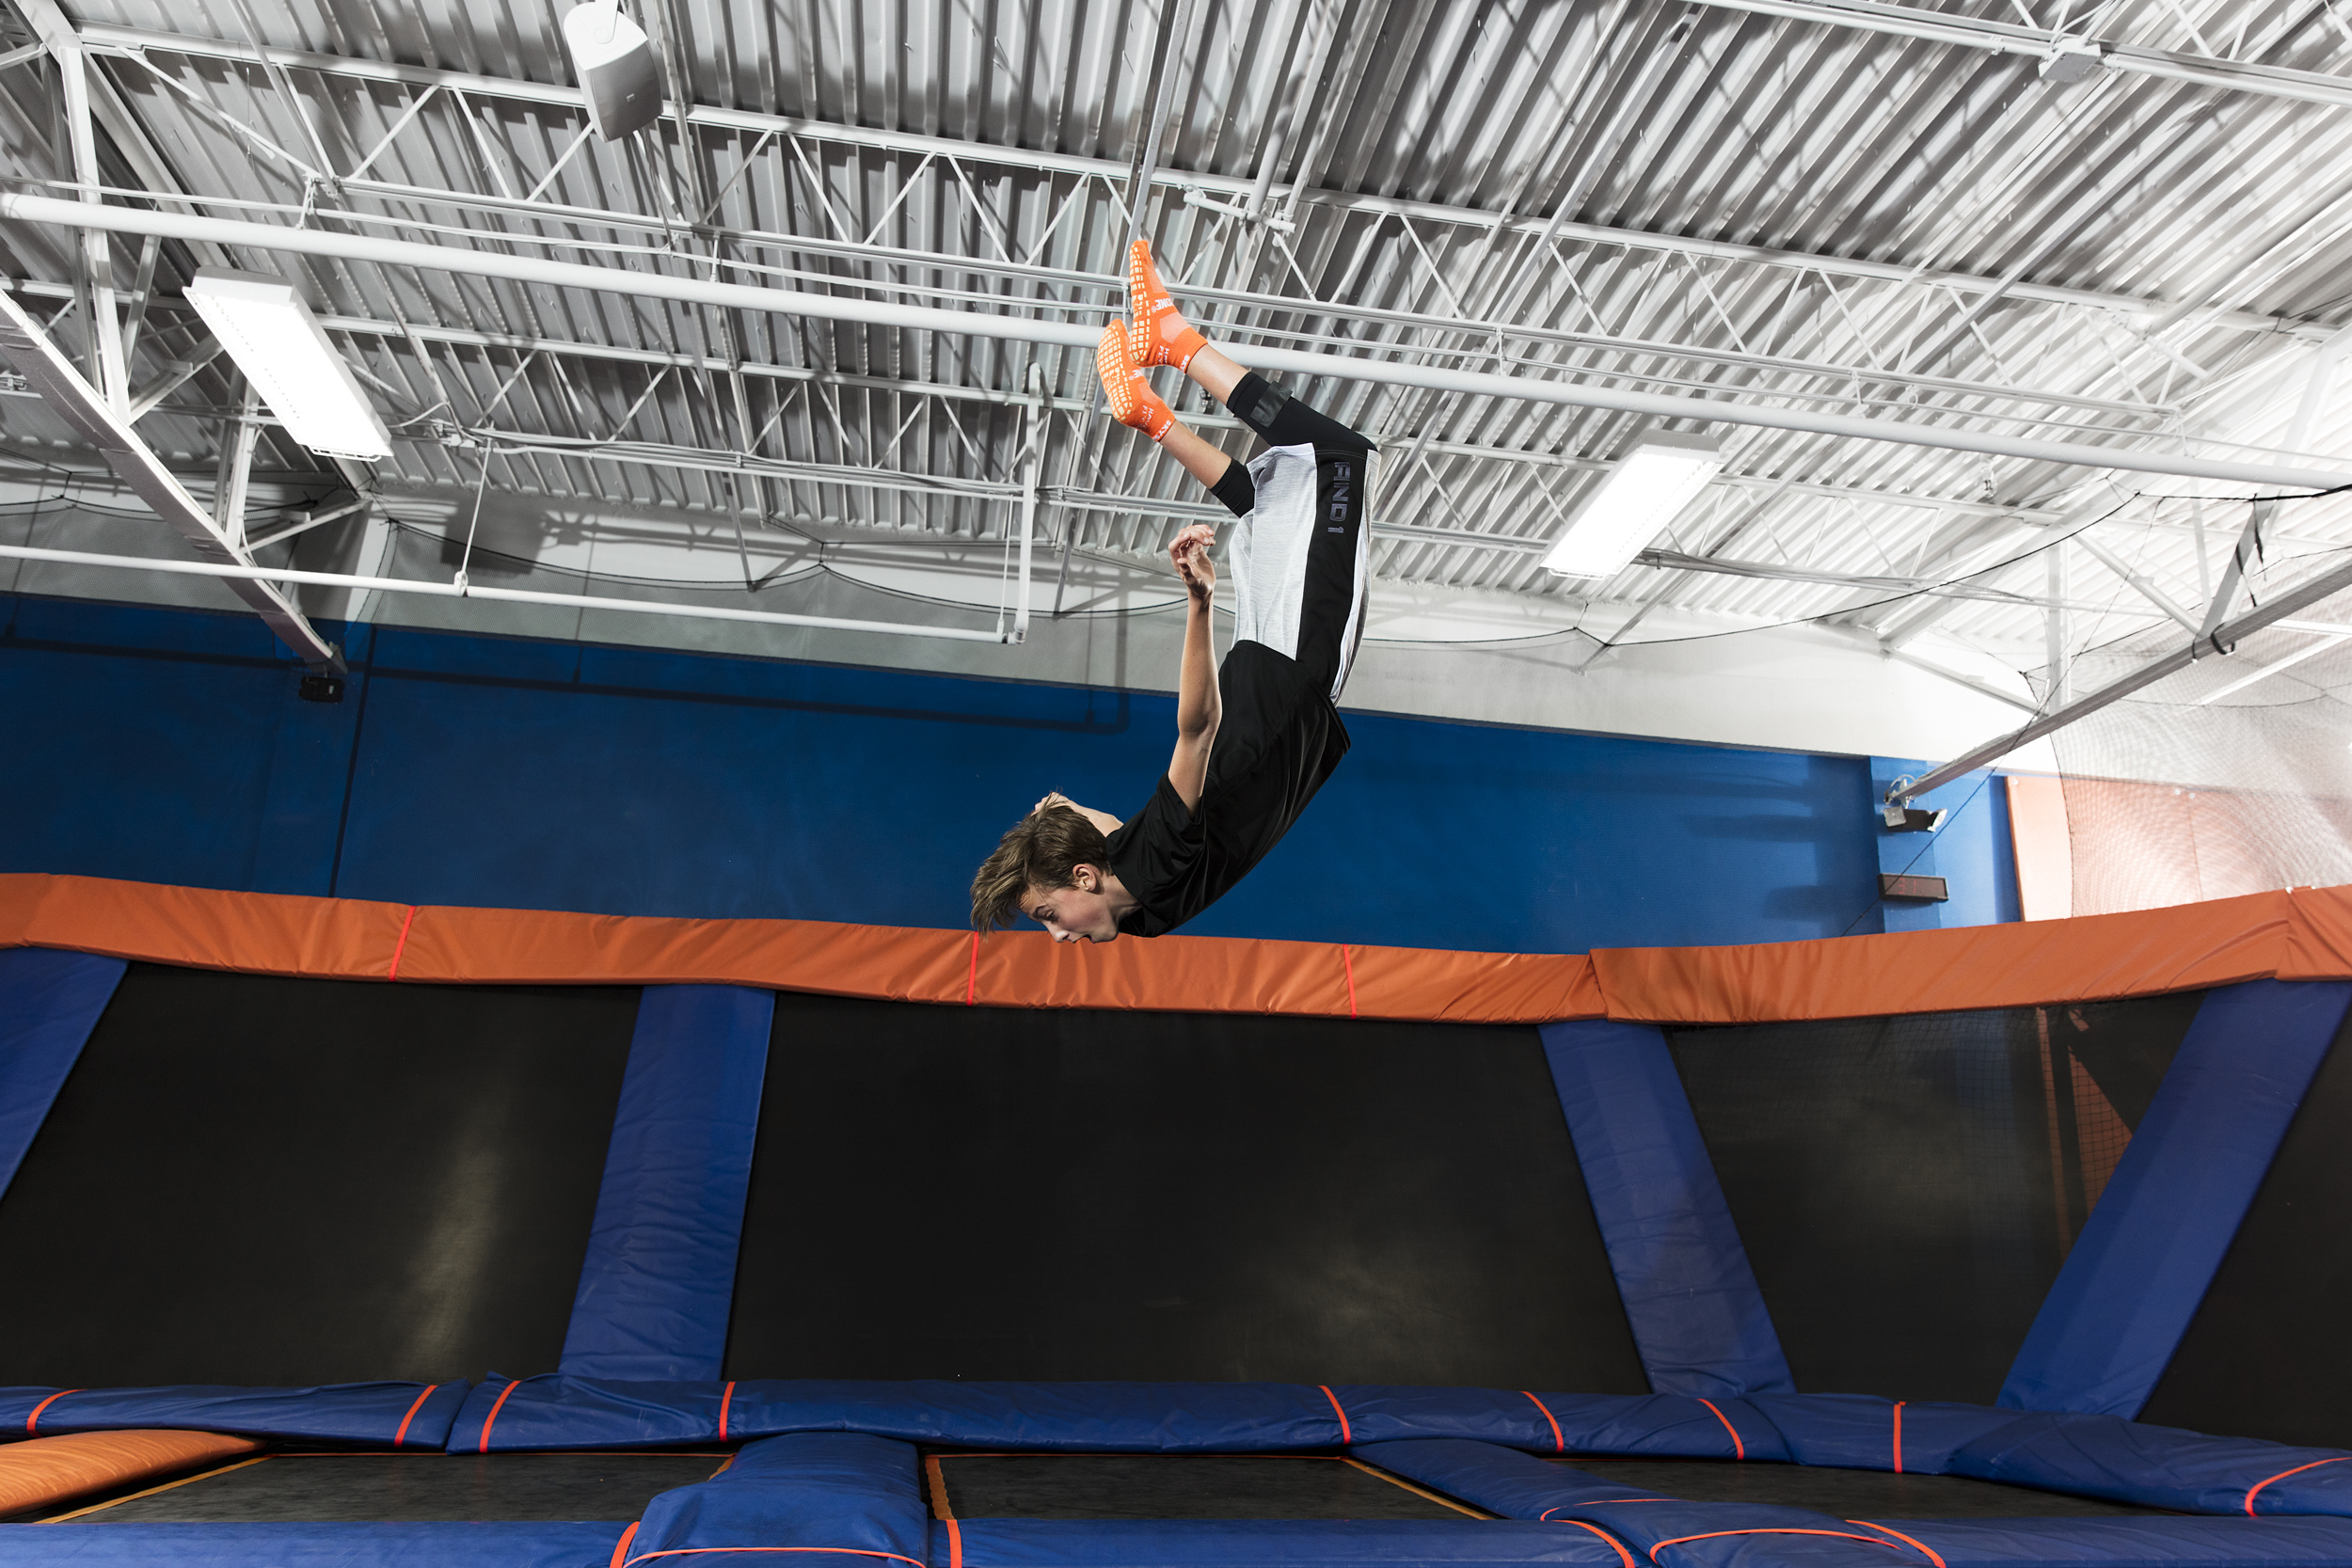 Come to Celebrate National Ice Cream Month at Sky Zone